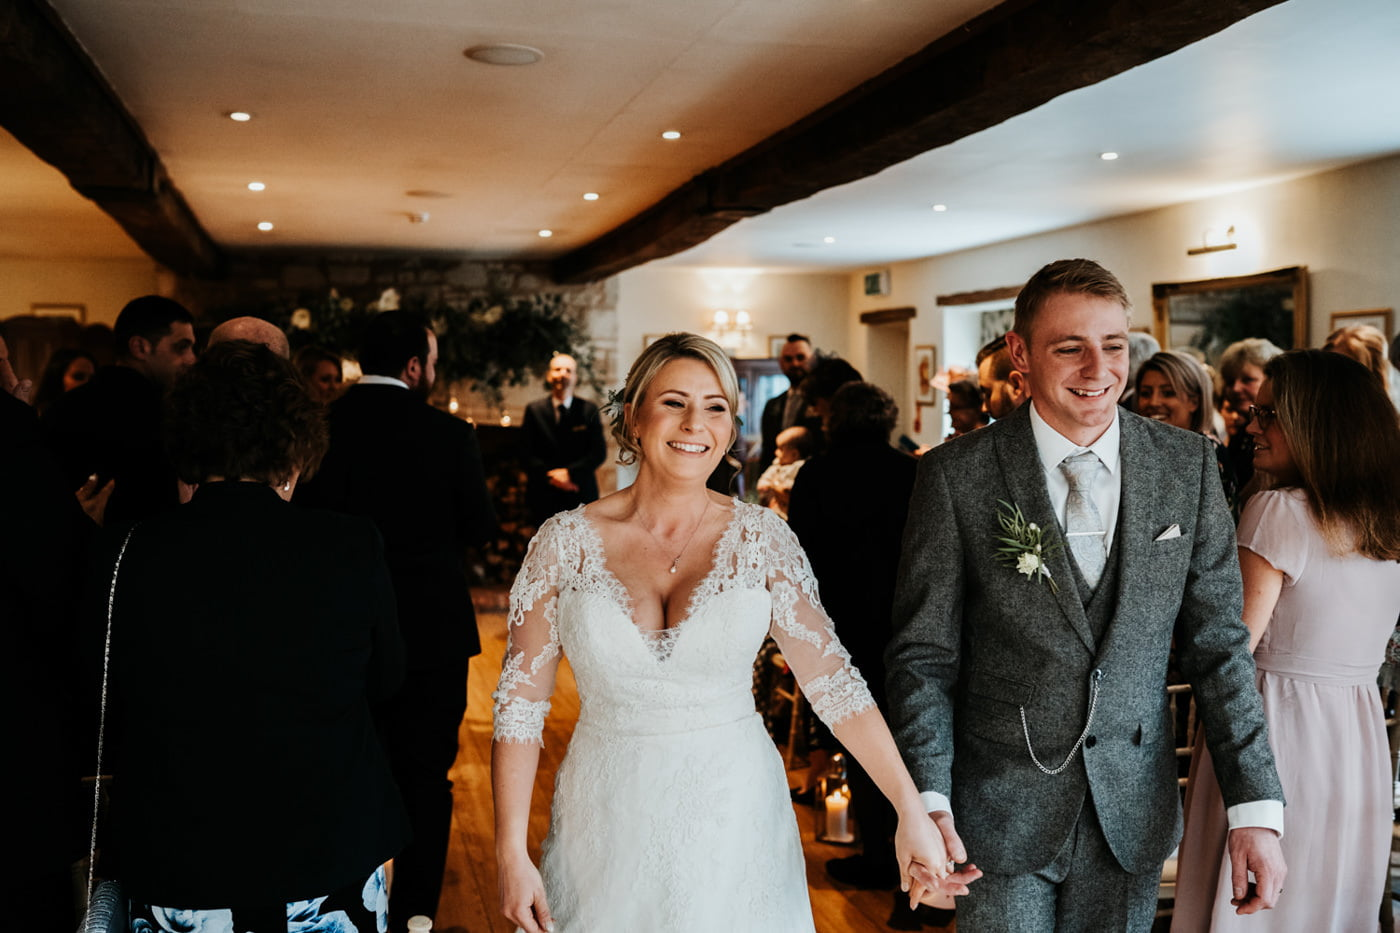 Emily and Rich, Moonraker Hotel, Wiltshire 56